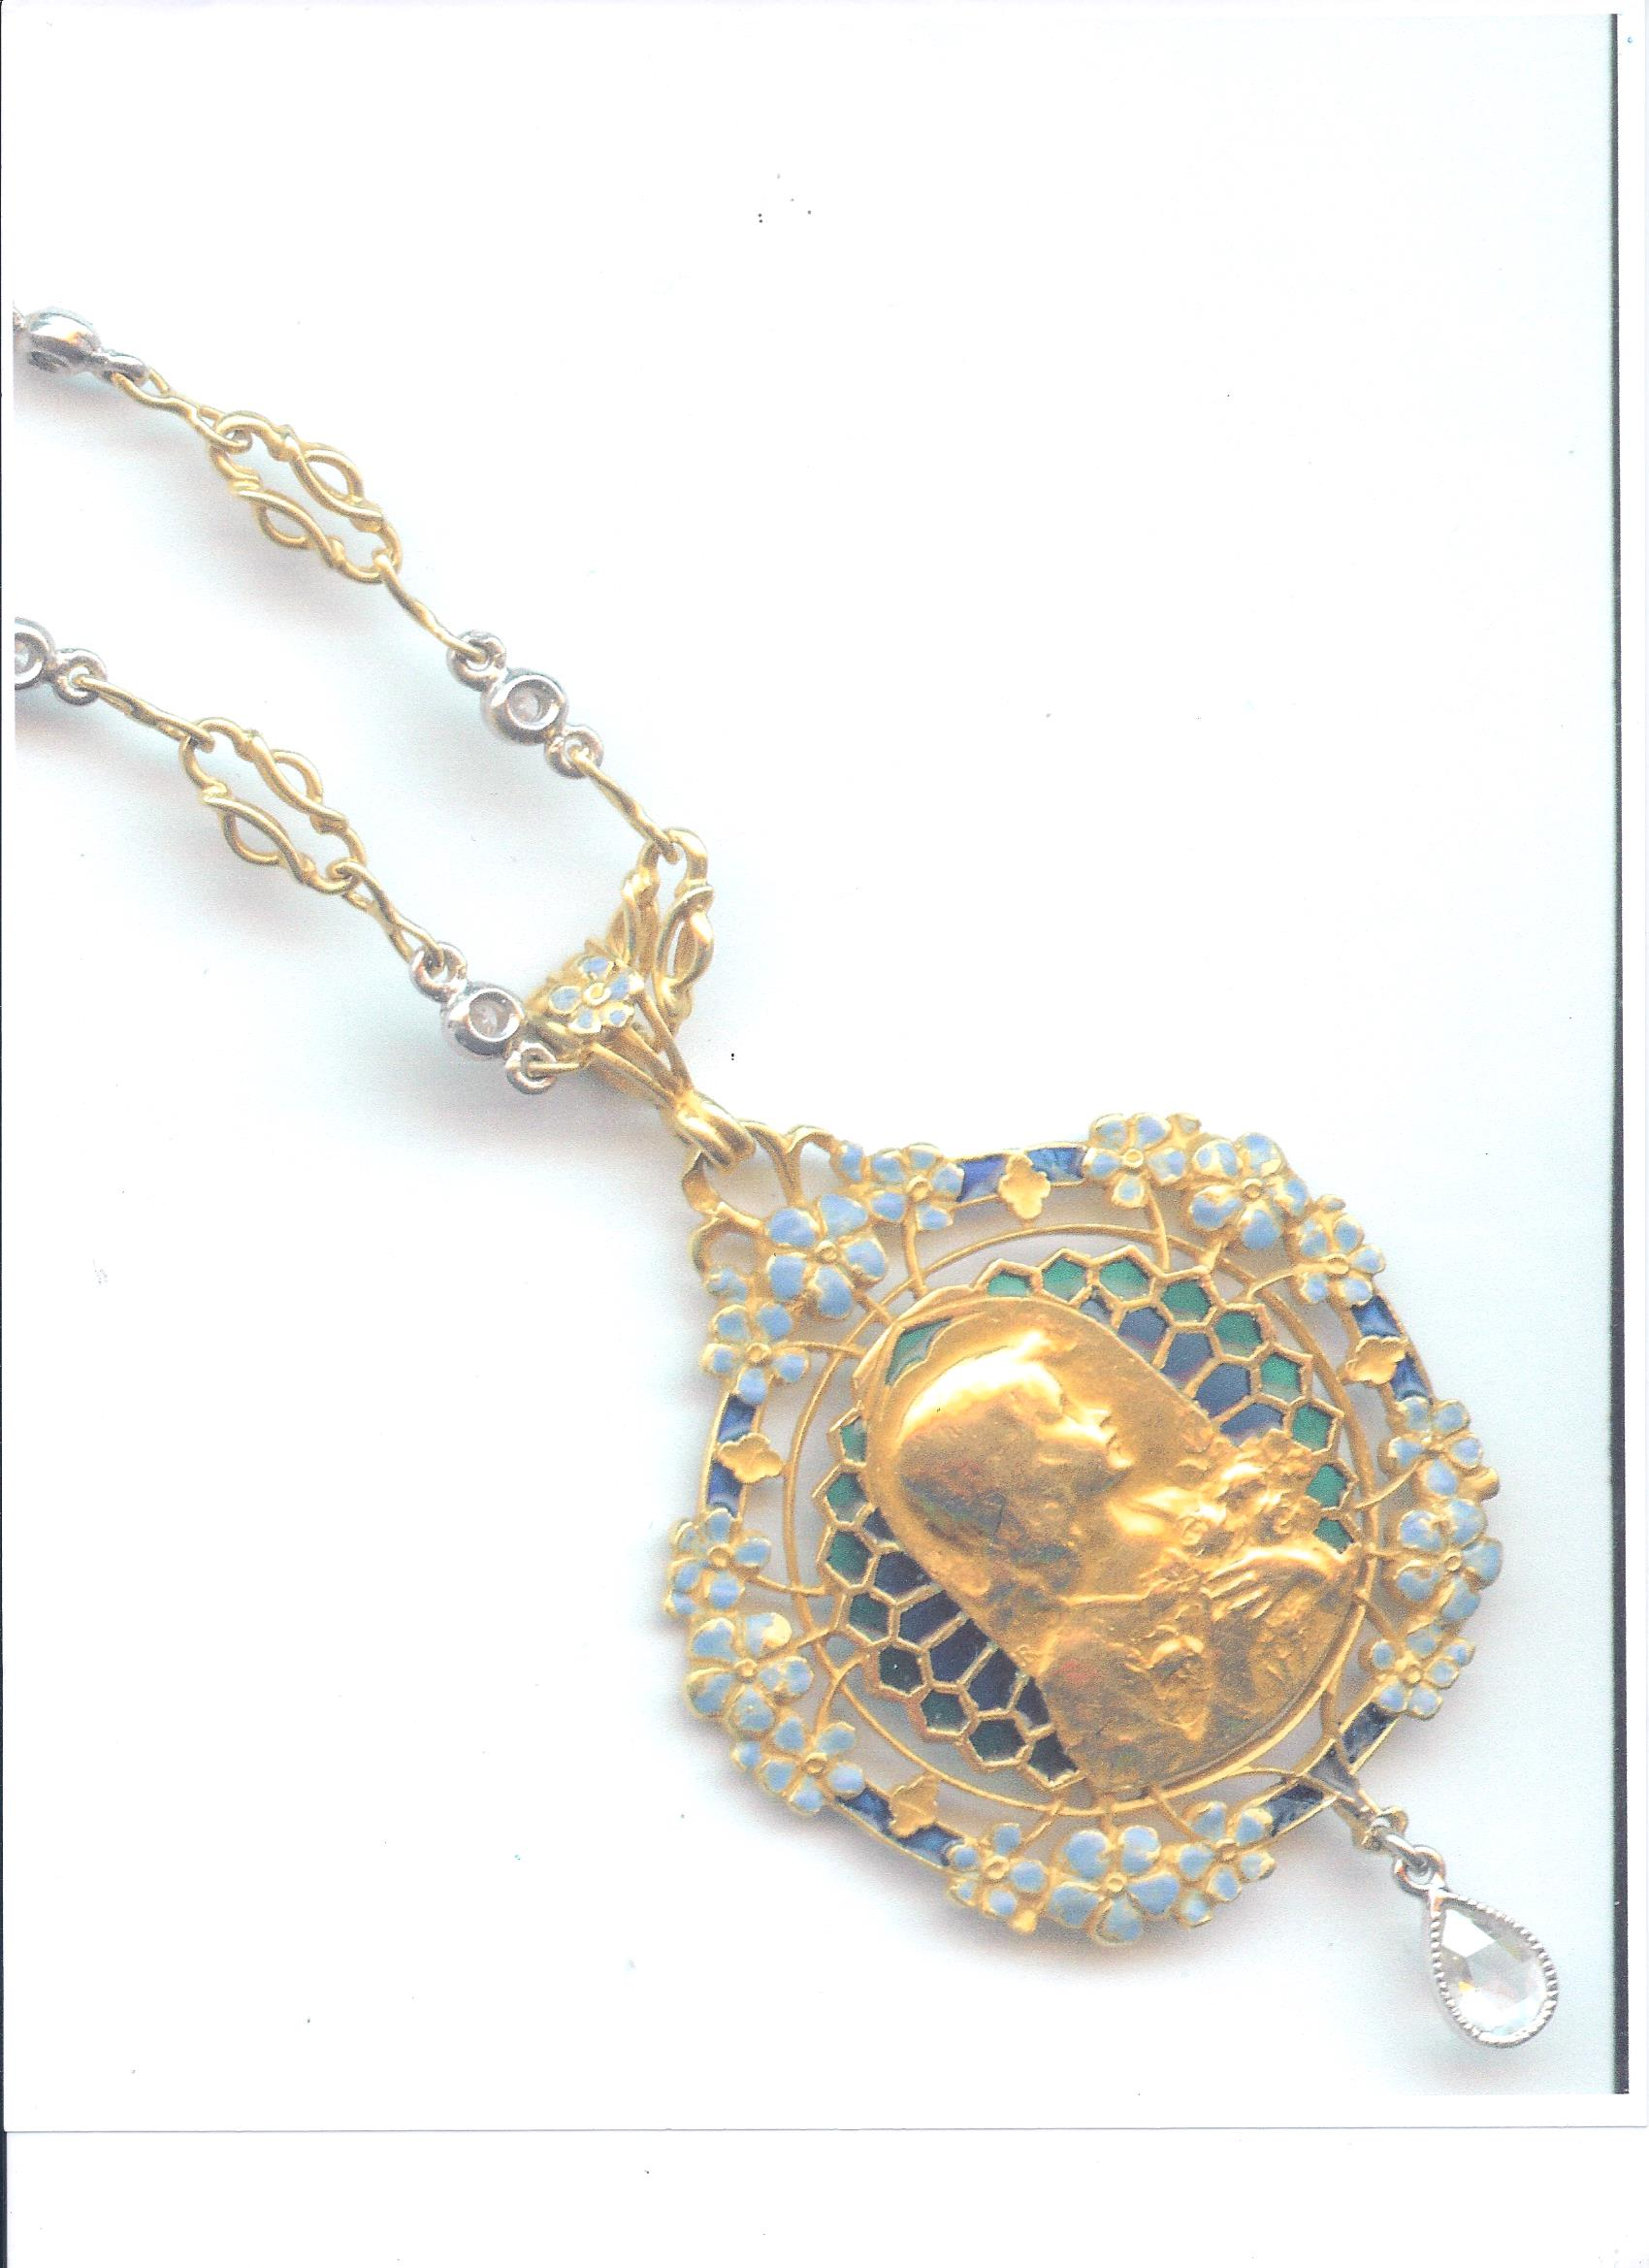 art_nouveau_plique_a_jour_18k_gold_pendant_with_girl_in_profile_and_gold_chain_photo_1.jpg